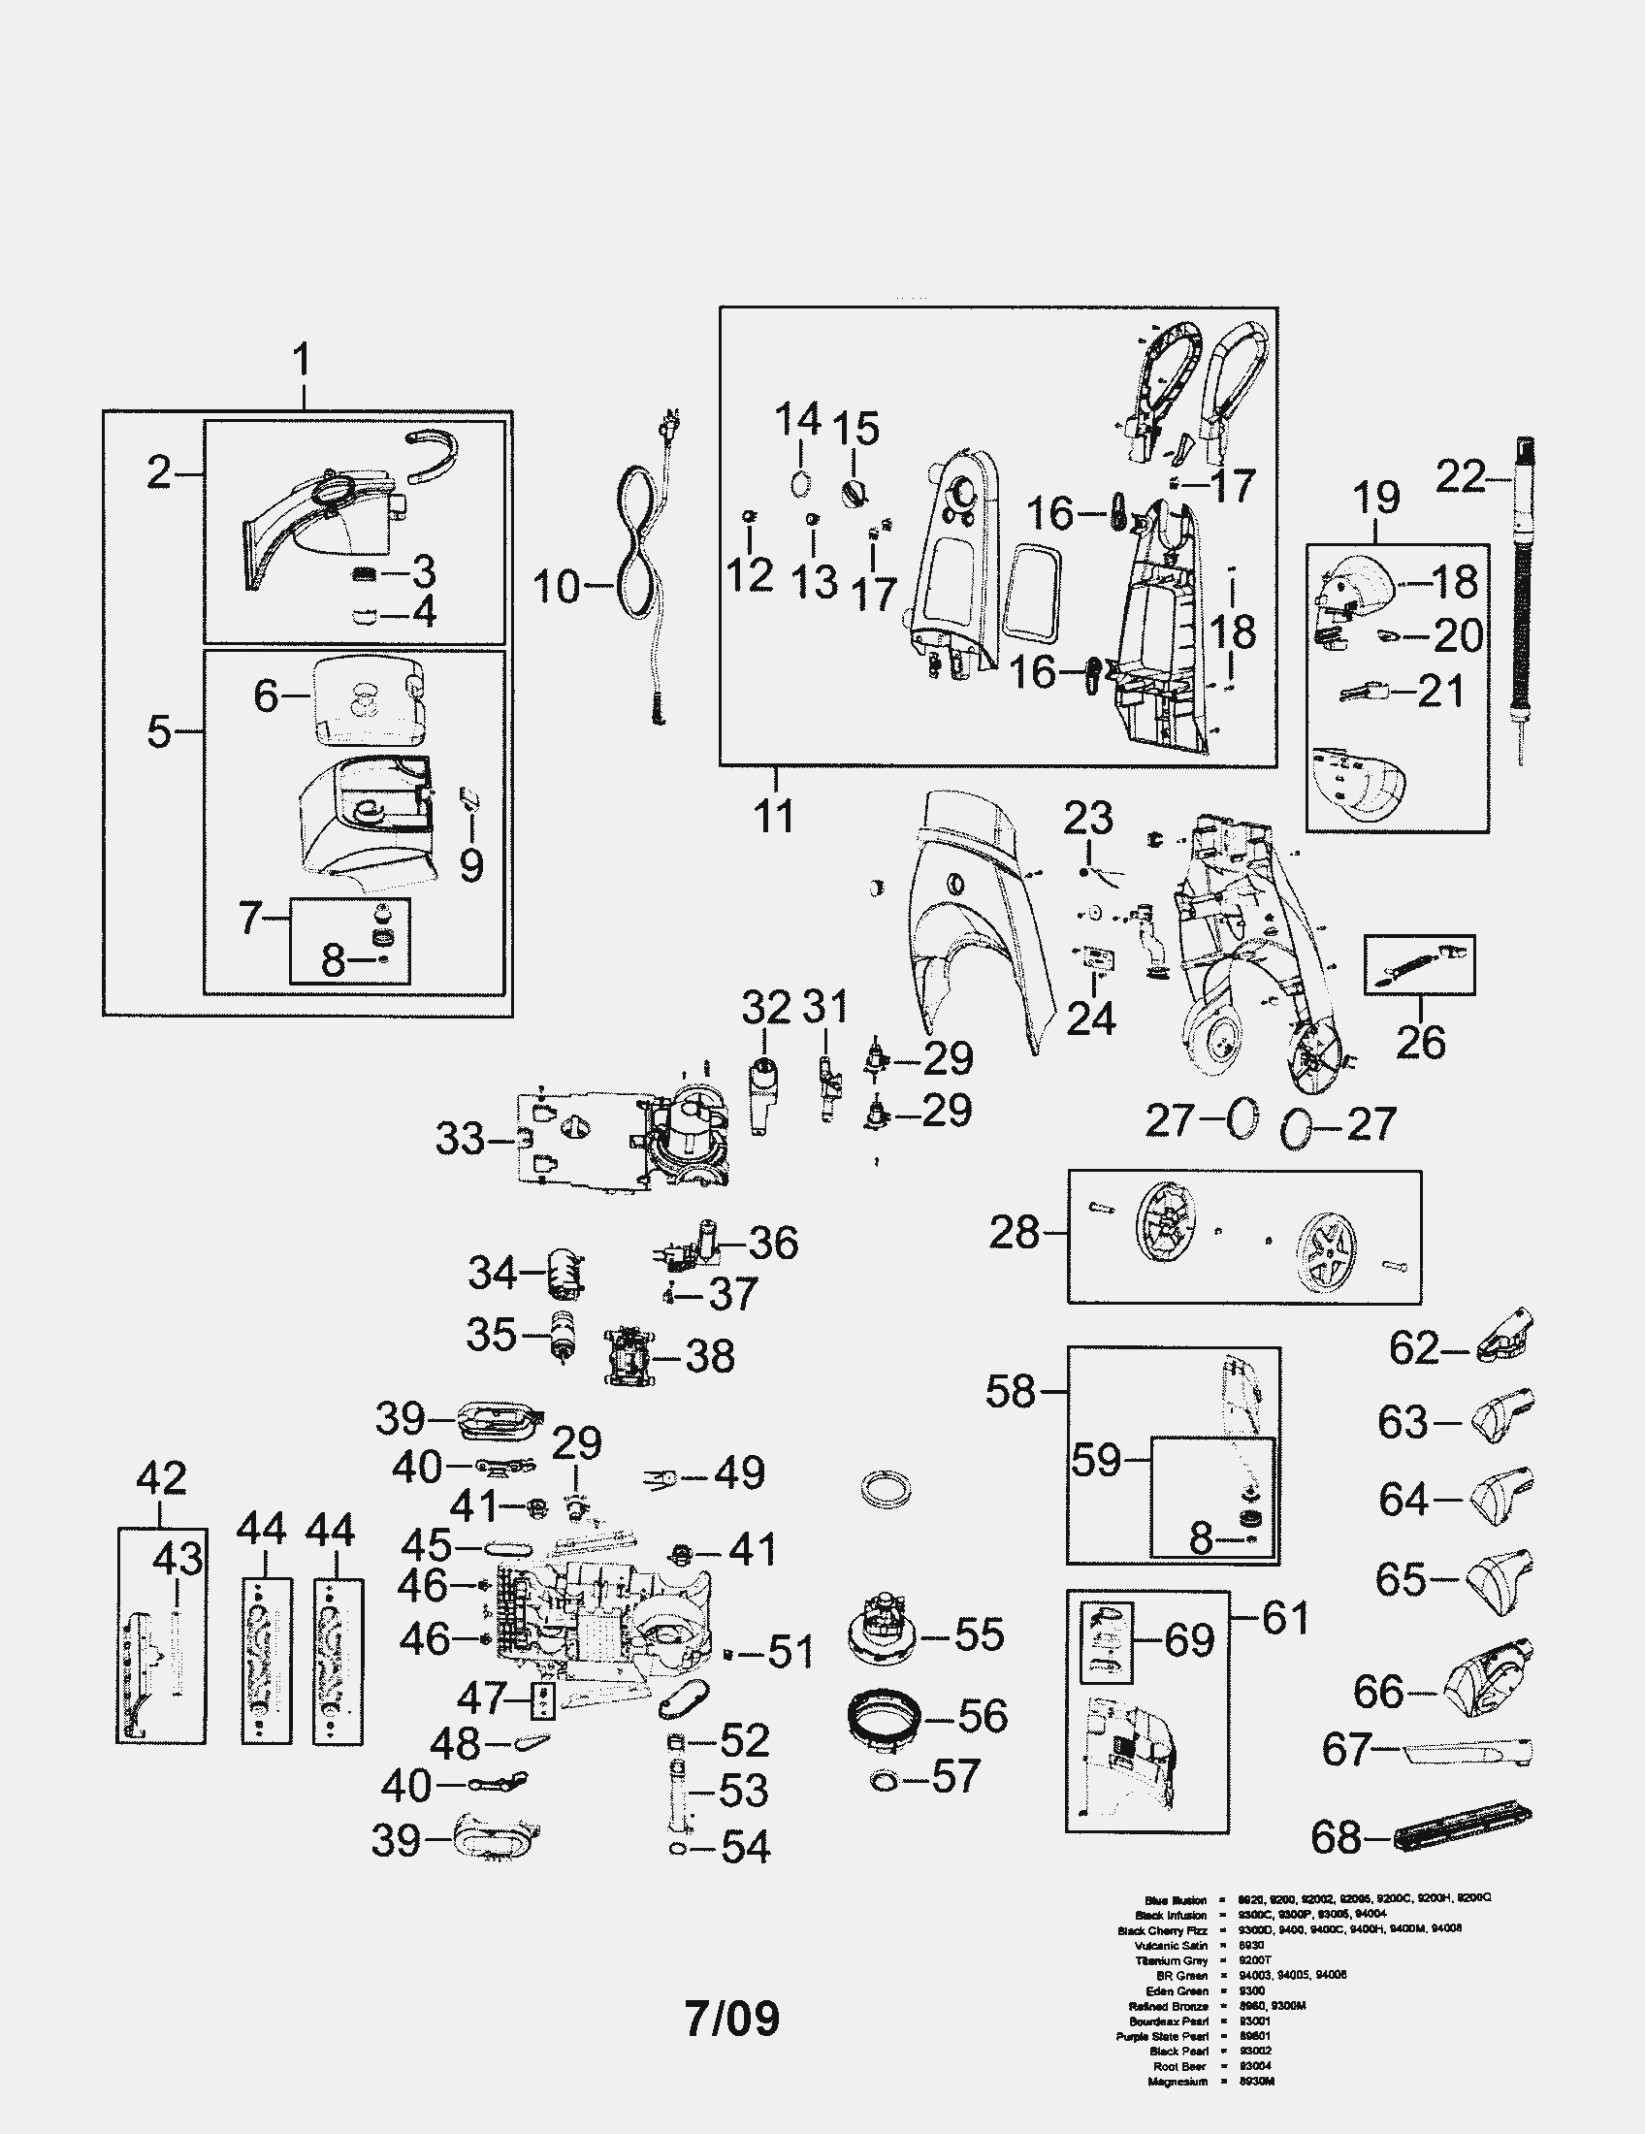 Bissell Proheat 2x Parts Diagram Carpet Cleaner Wiring Diagram Wiring Diagram New Of Bissell Proheat 2x Parts Diagram